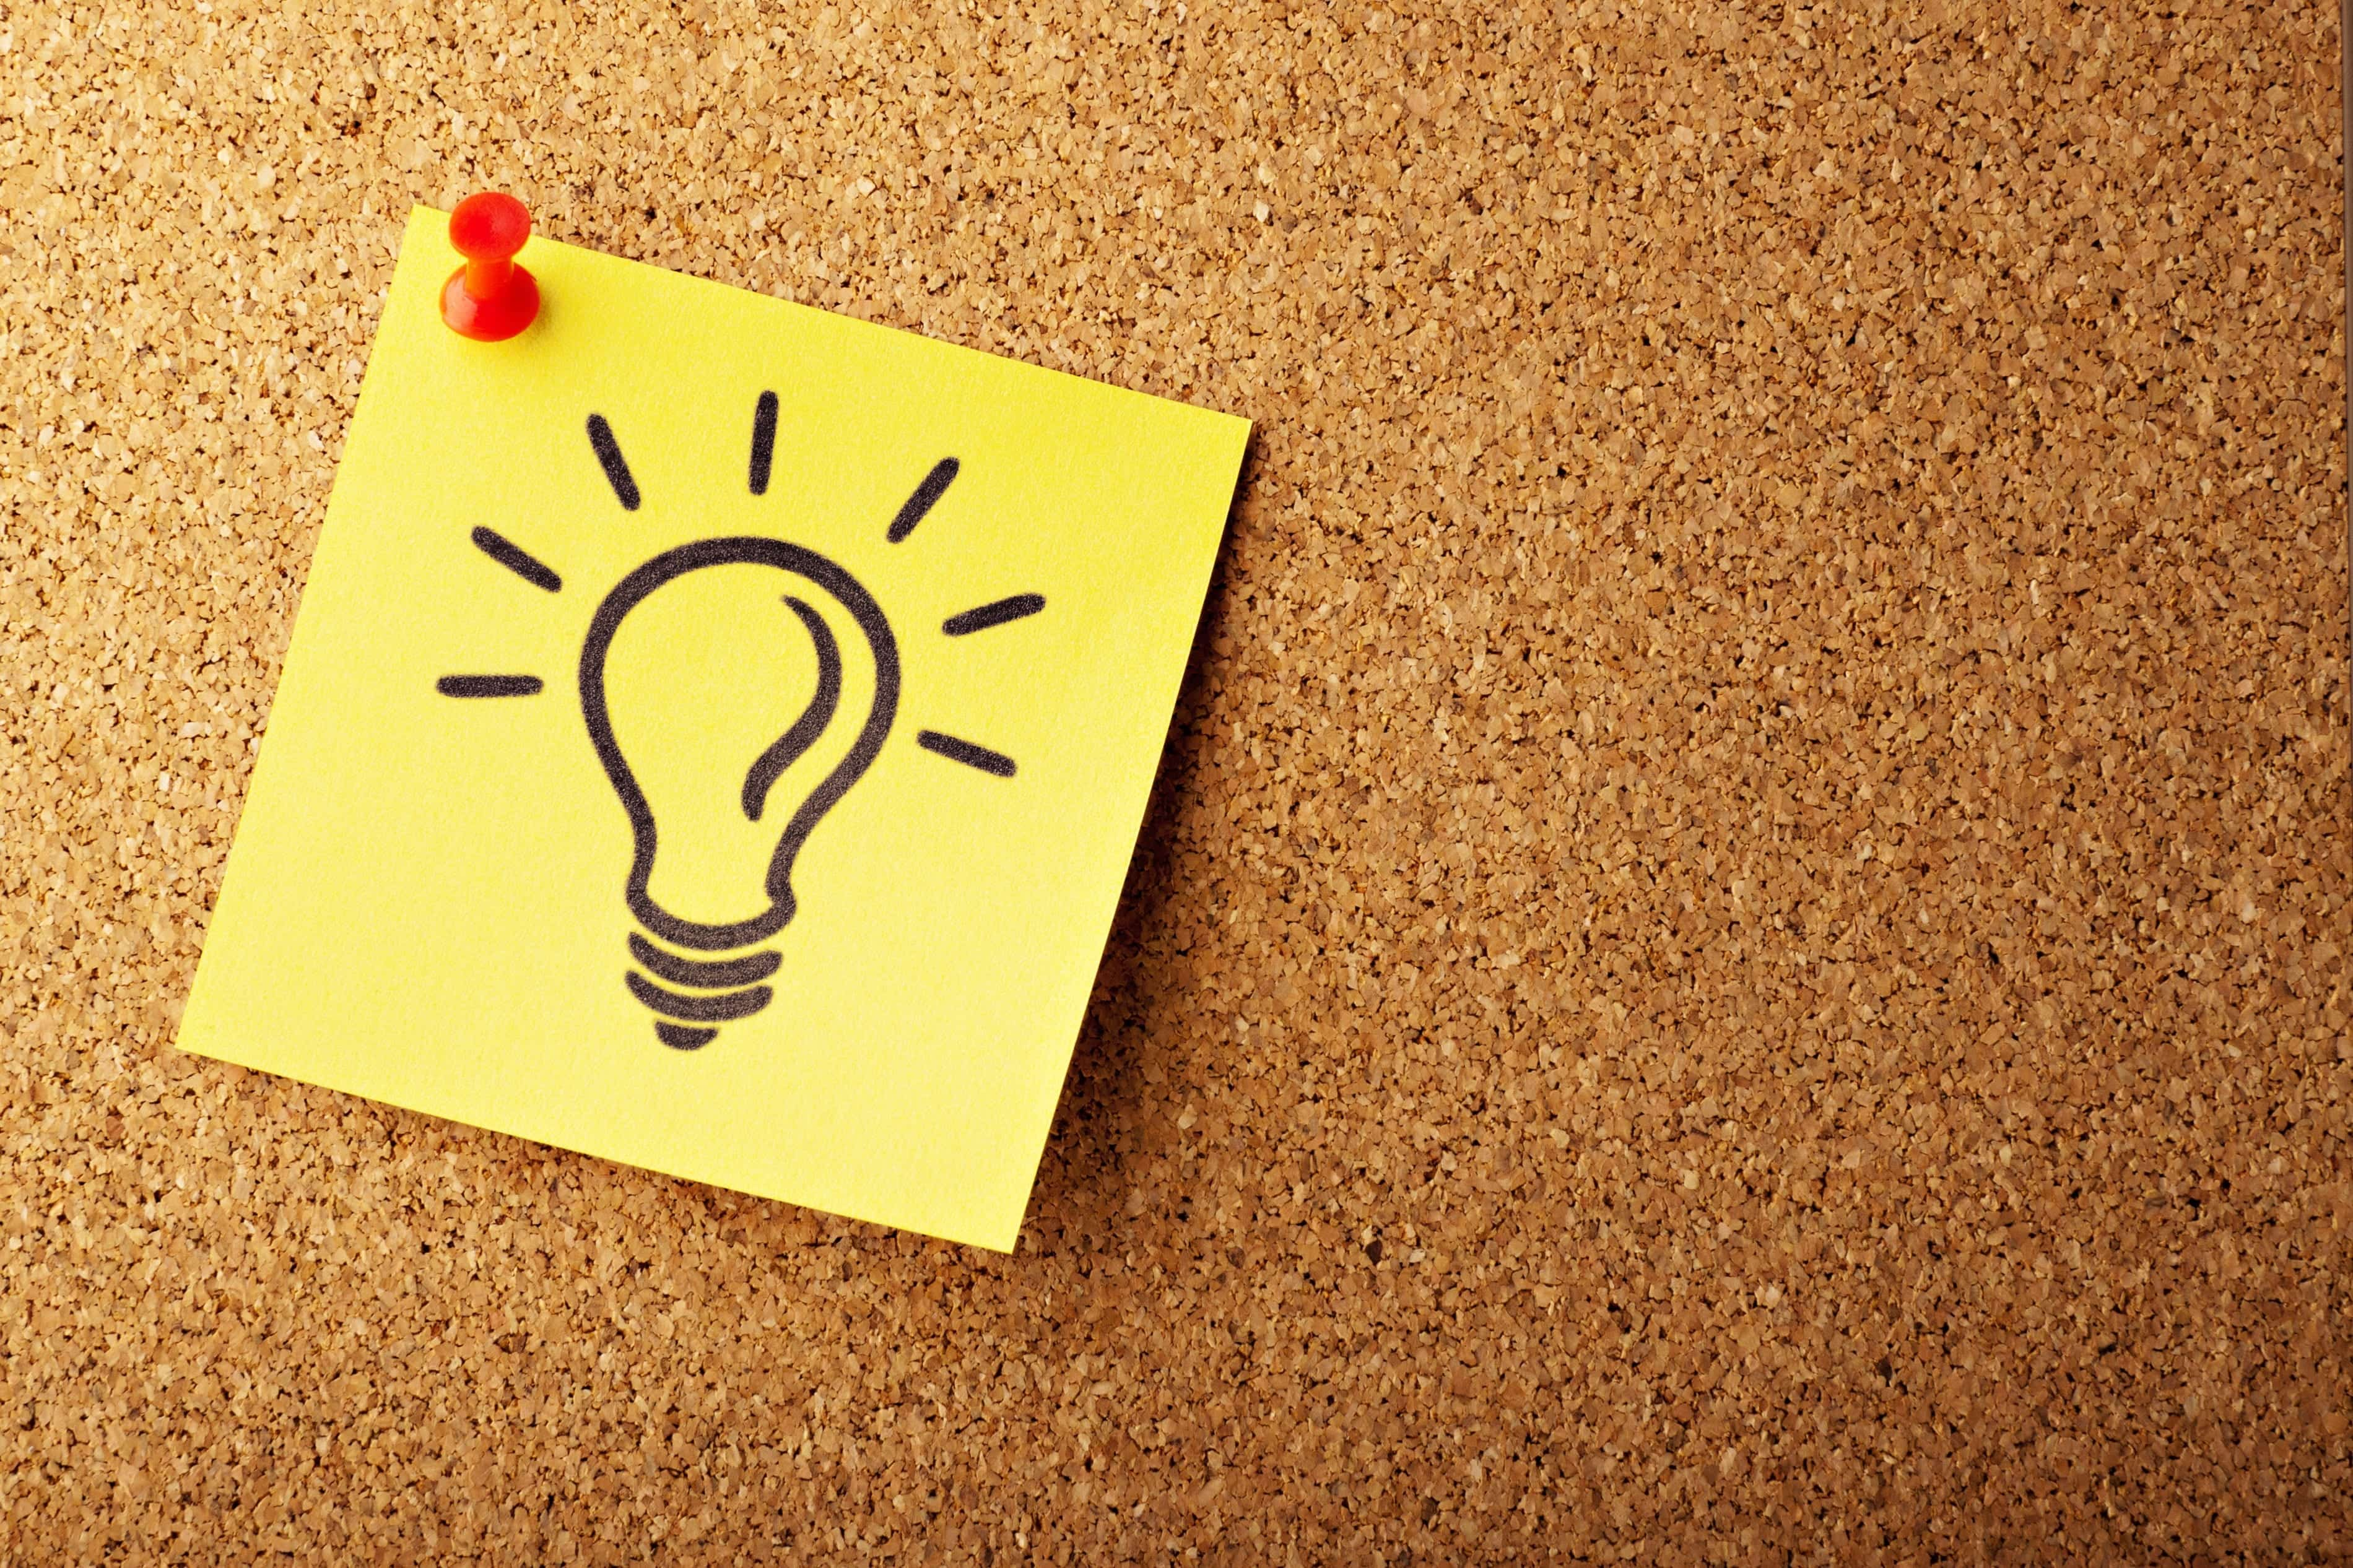 Yellow sticky note with a light bulb drawn on it tacked to a cork board; image by AbsolutVision, via Unsplash.com.